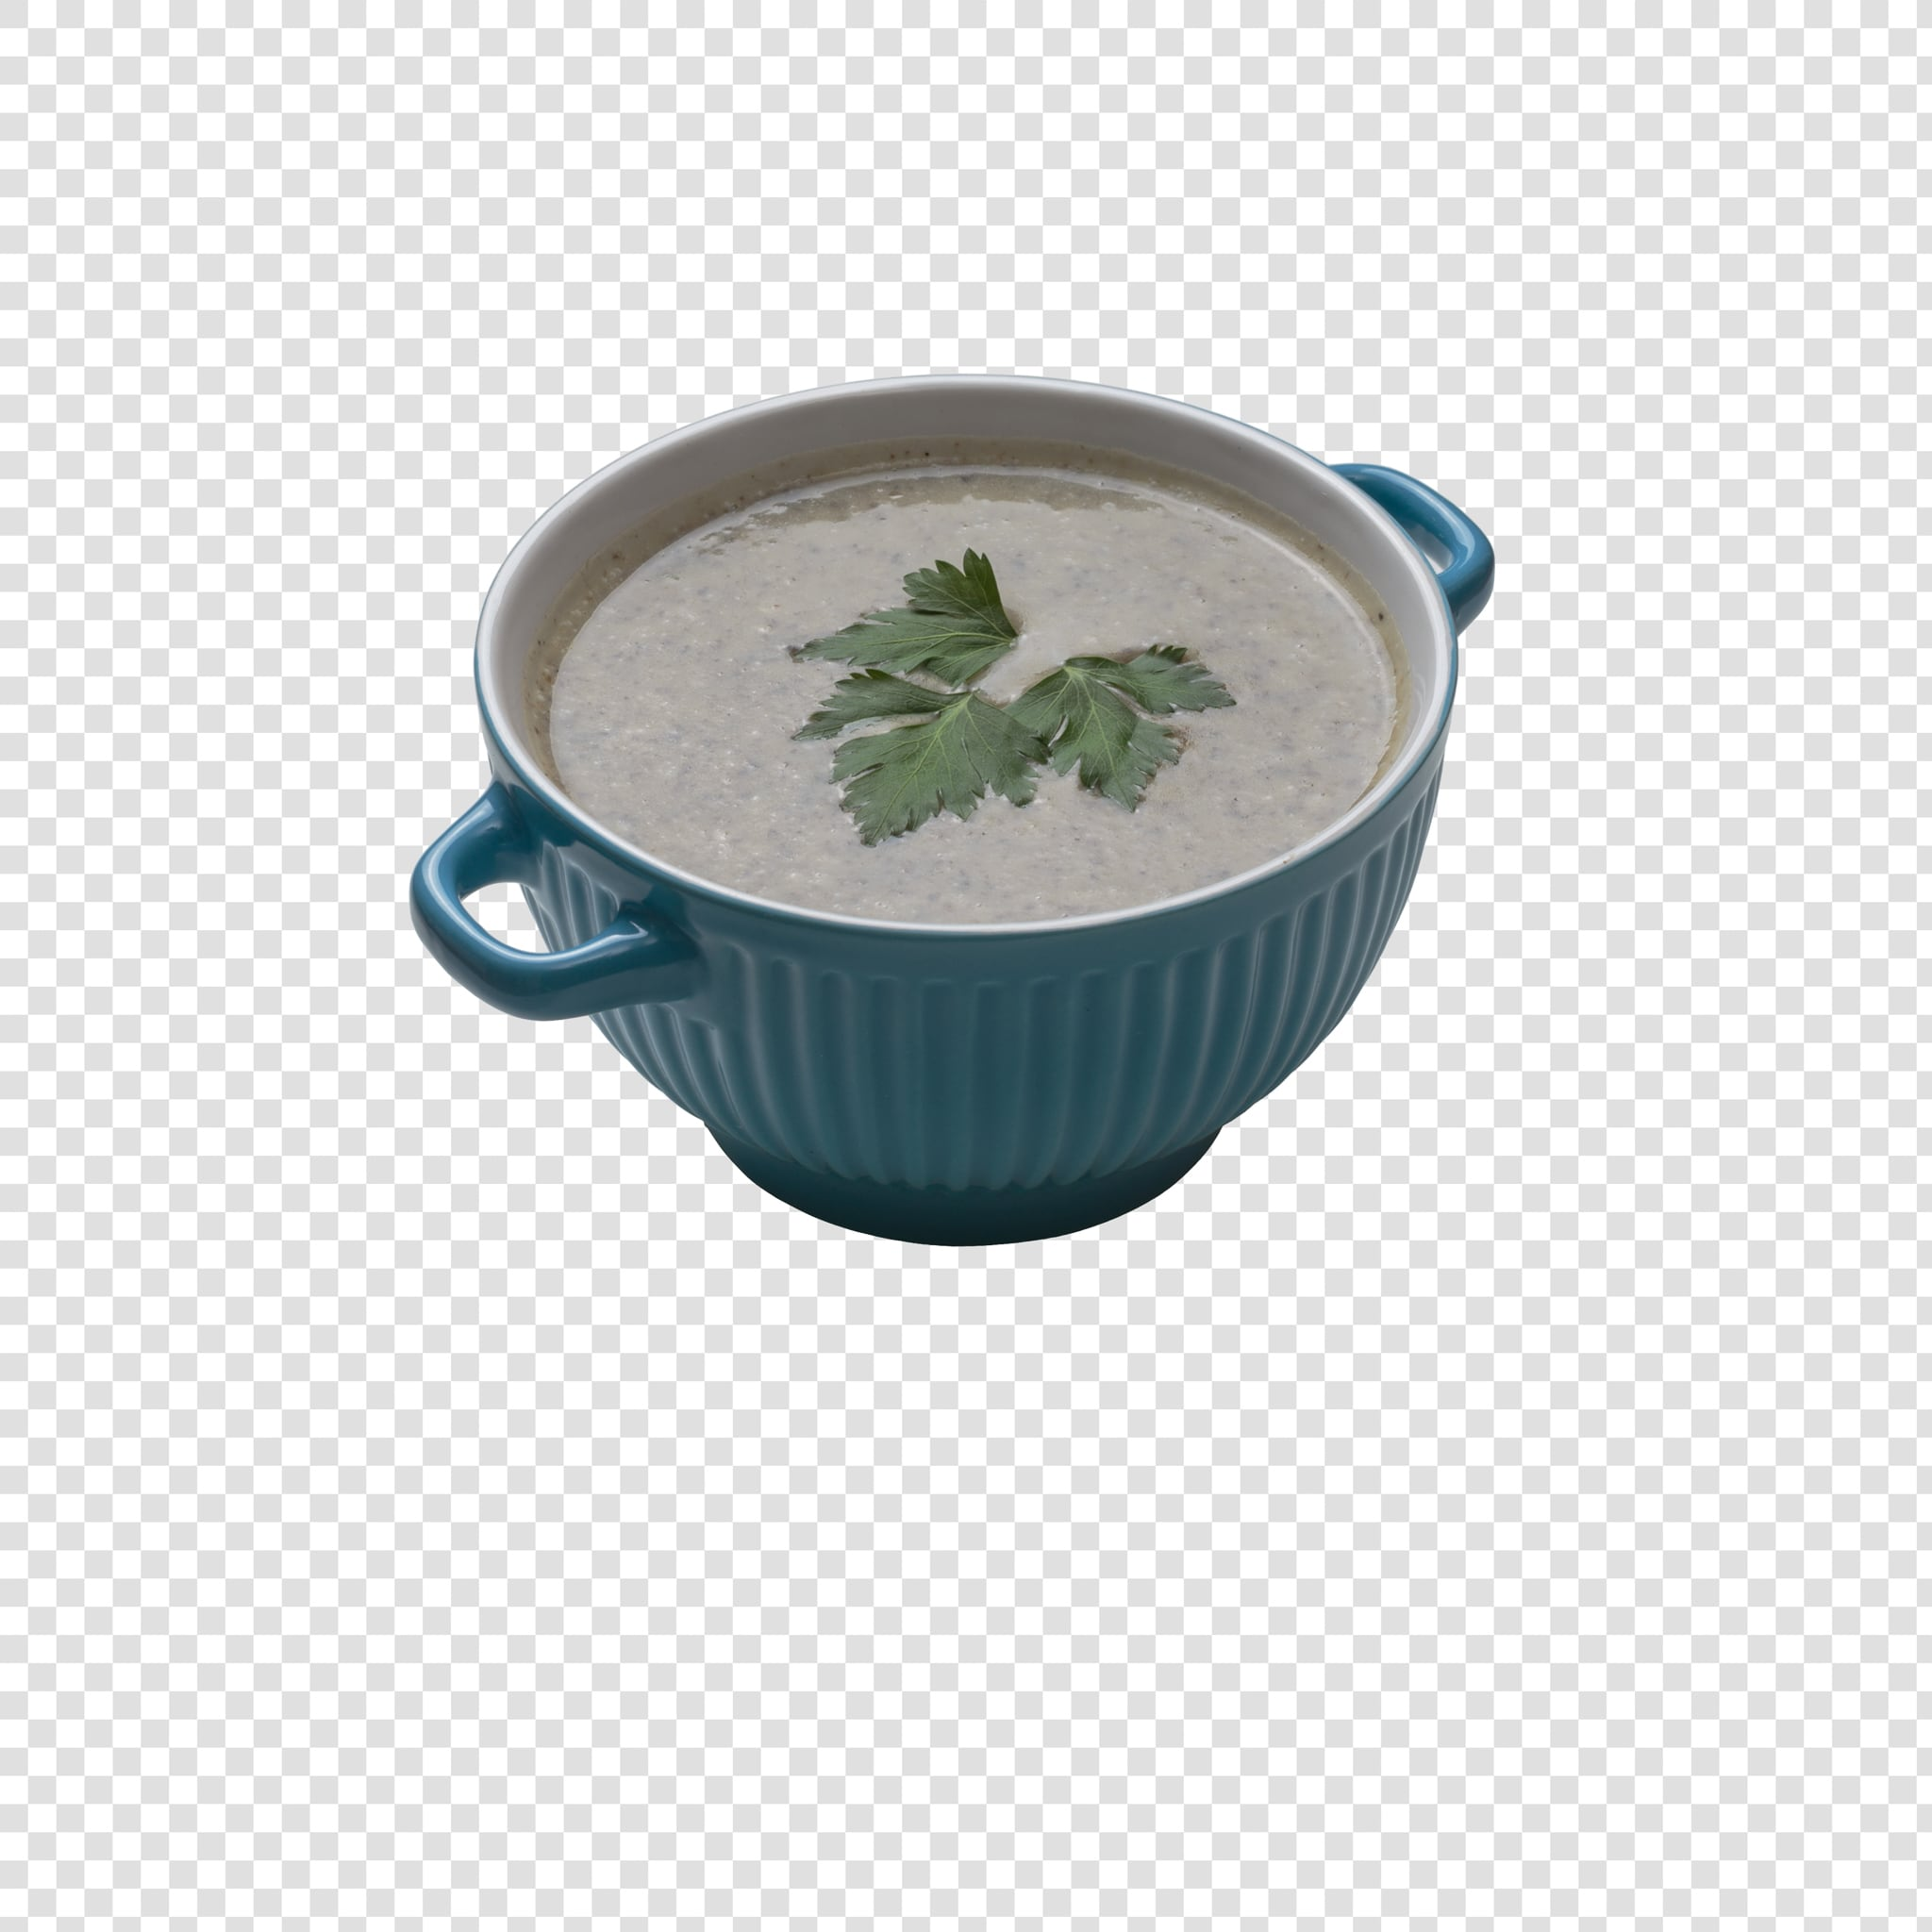 Soup PSD isolated image